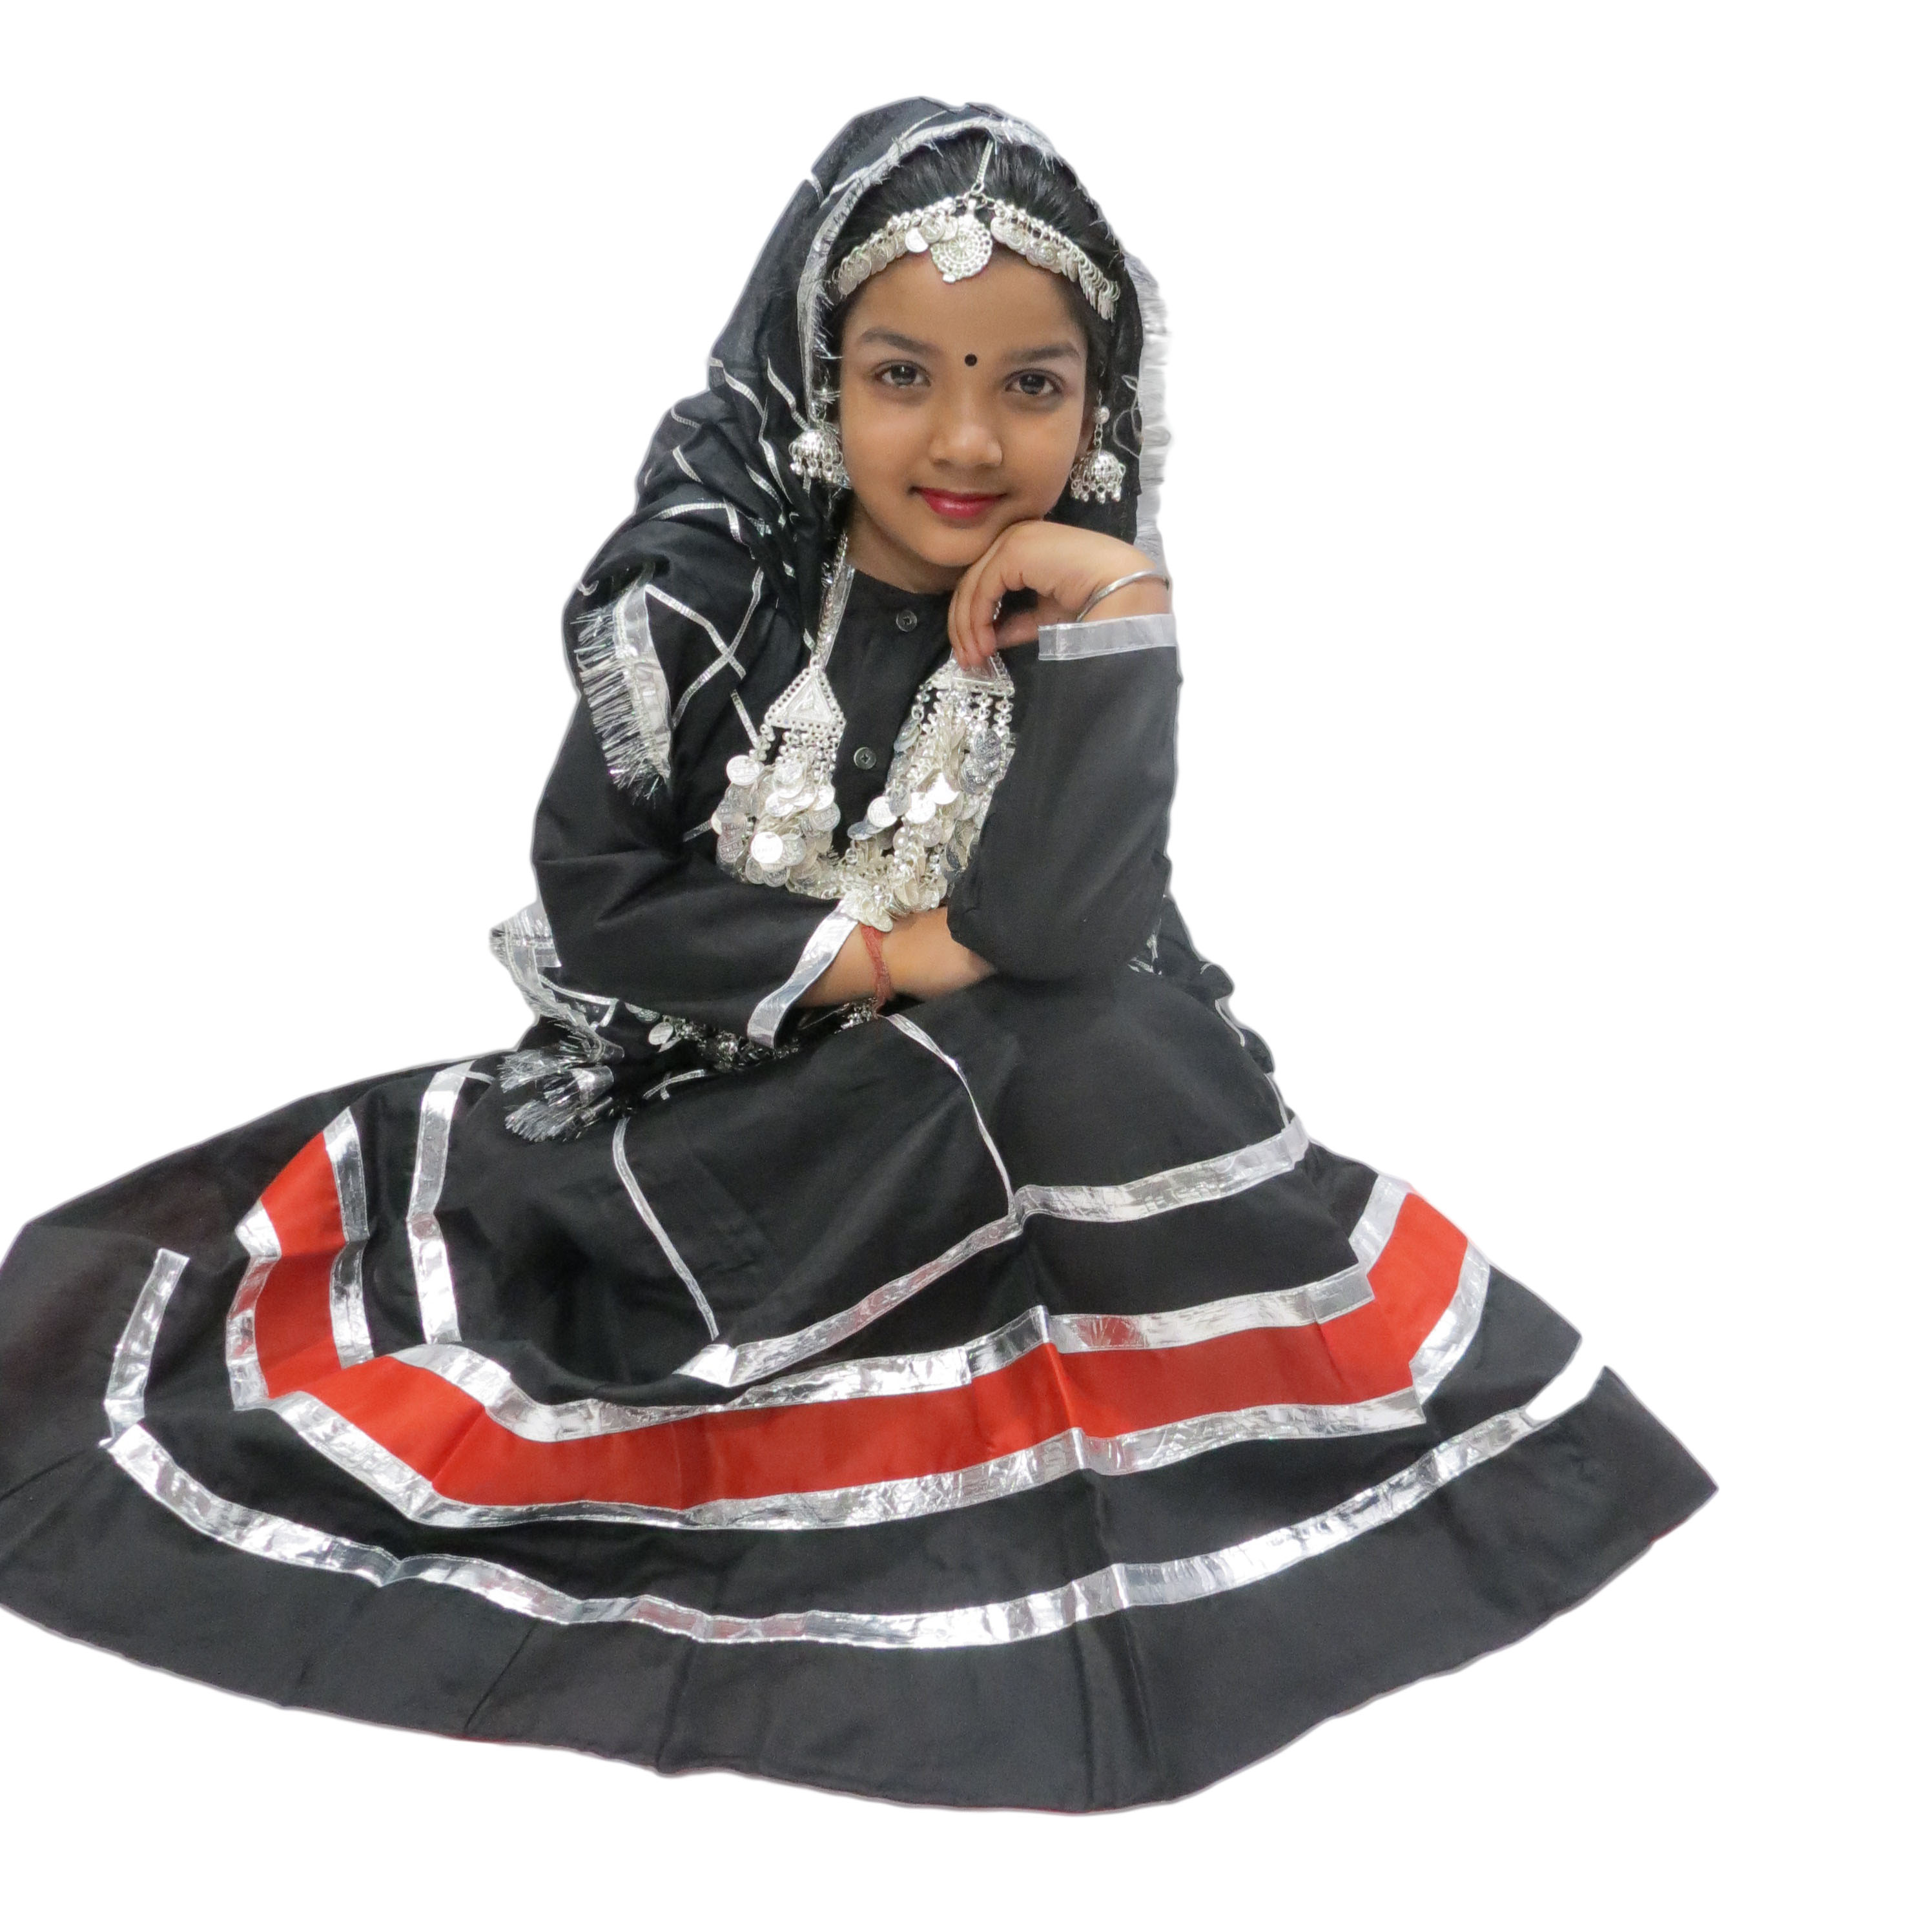 f13d8ab1e3c5 Fancy Costume World | One Stop for all kinds of Dance and Drama dresses